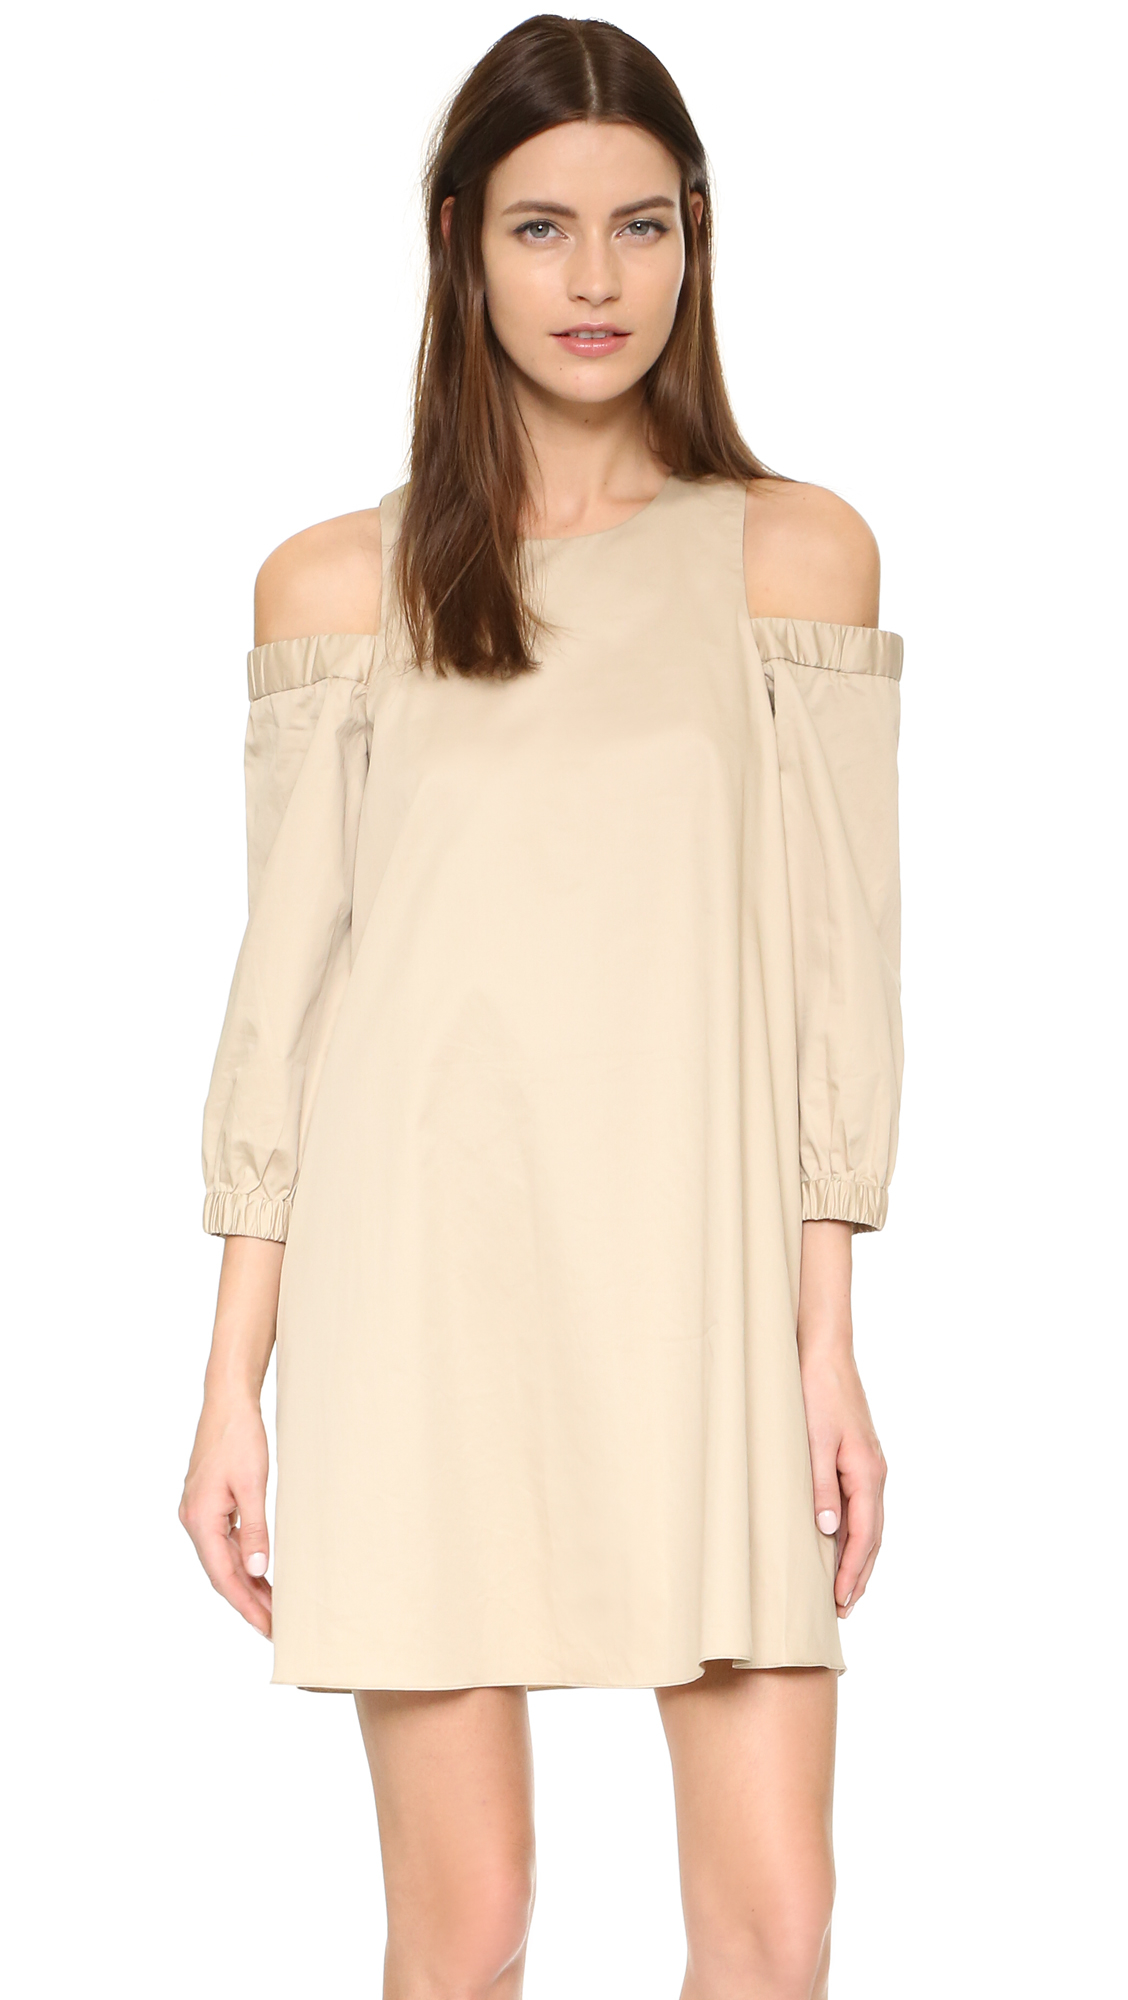 Women's Clothing. Whether you're searching for trendy styles to update your look or tried-and-true classics you'll love forever, Nordstrom offers the very best in women's clothing.